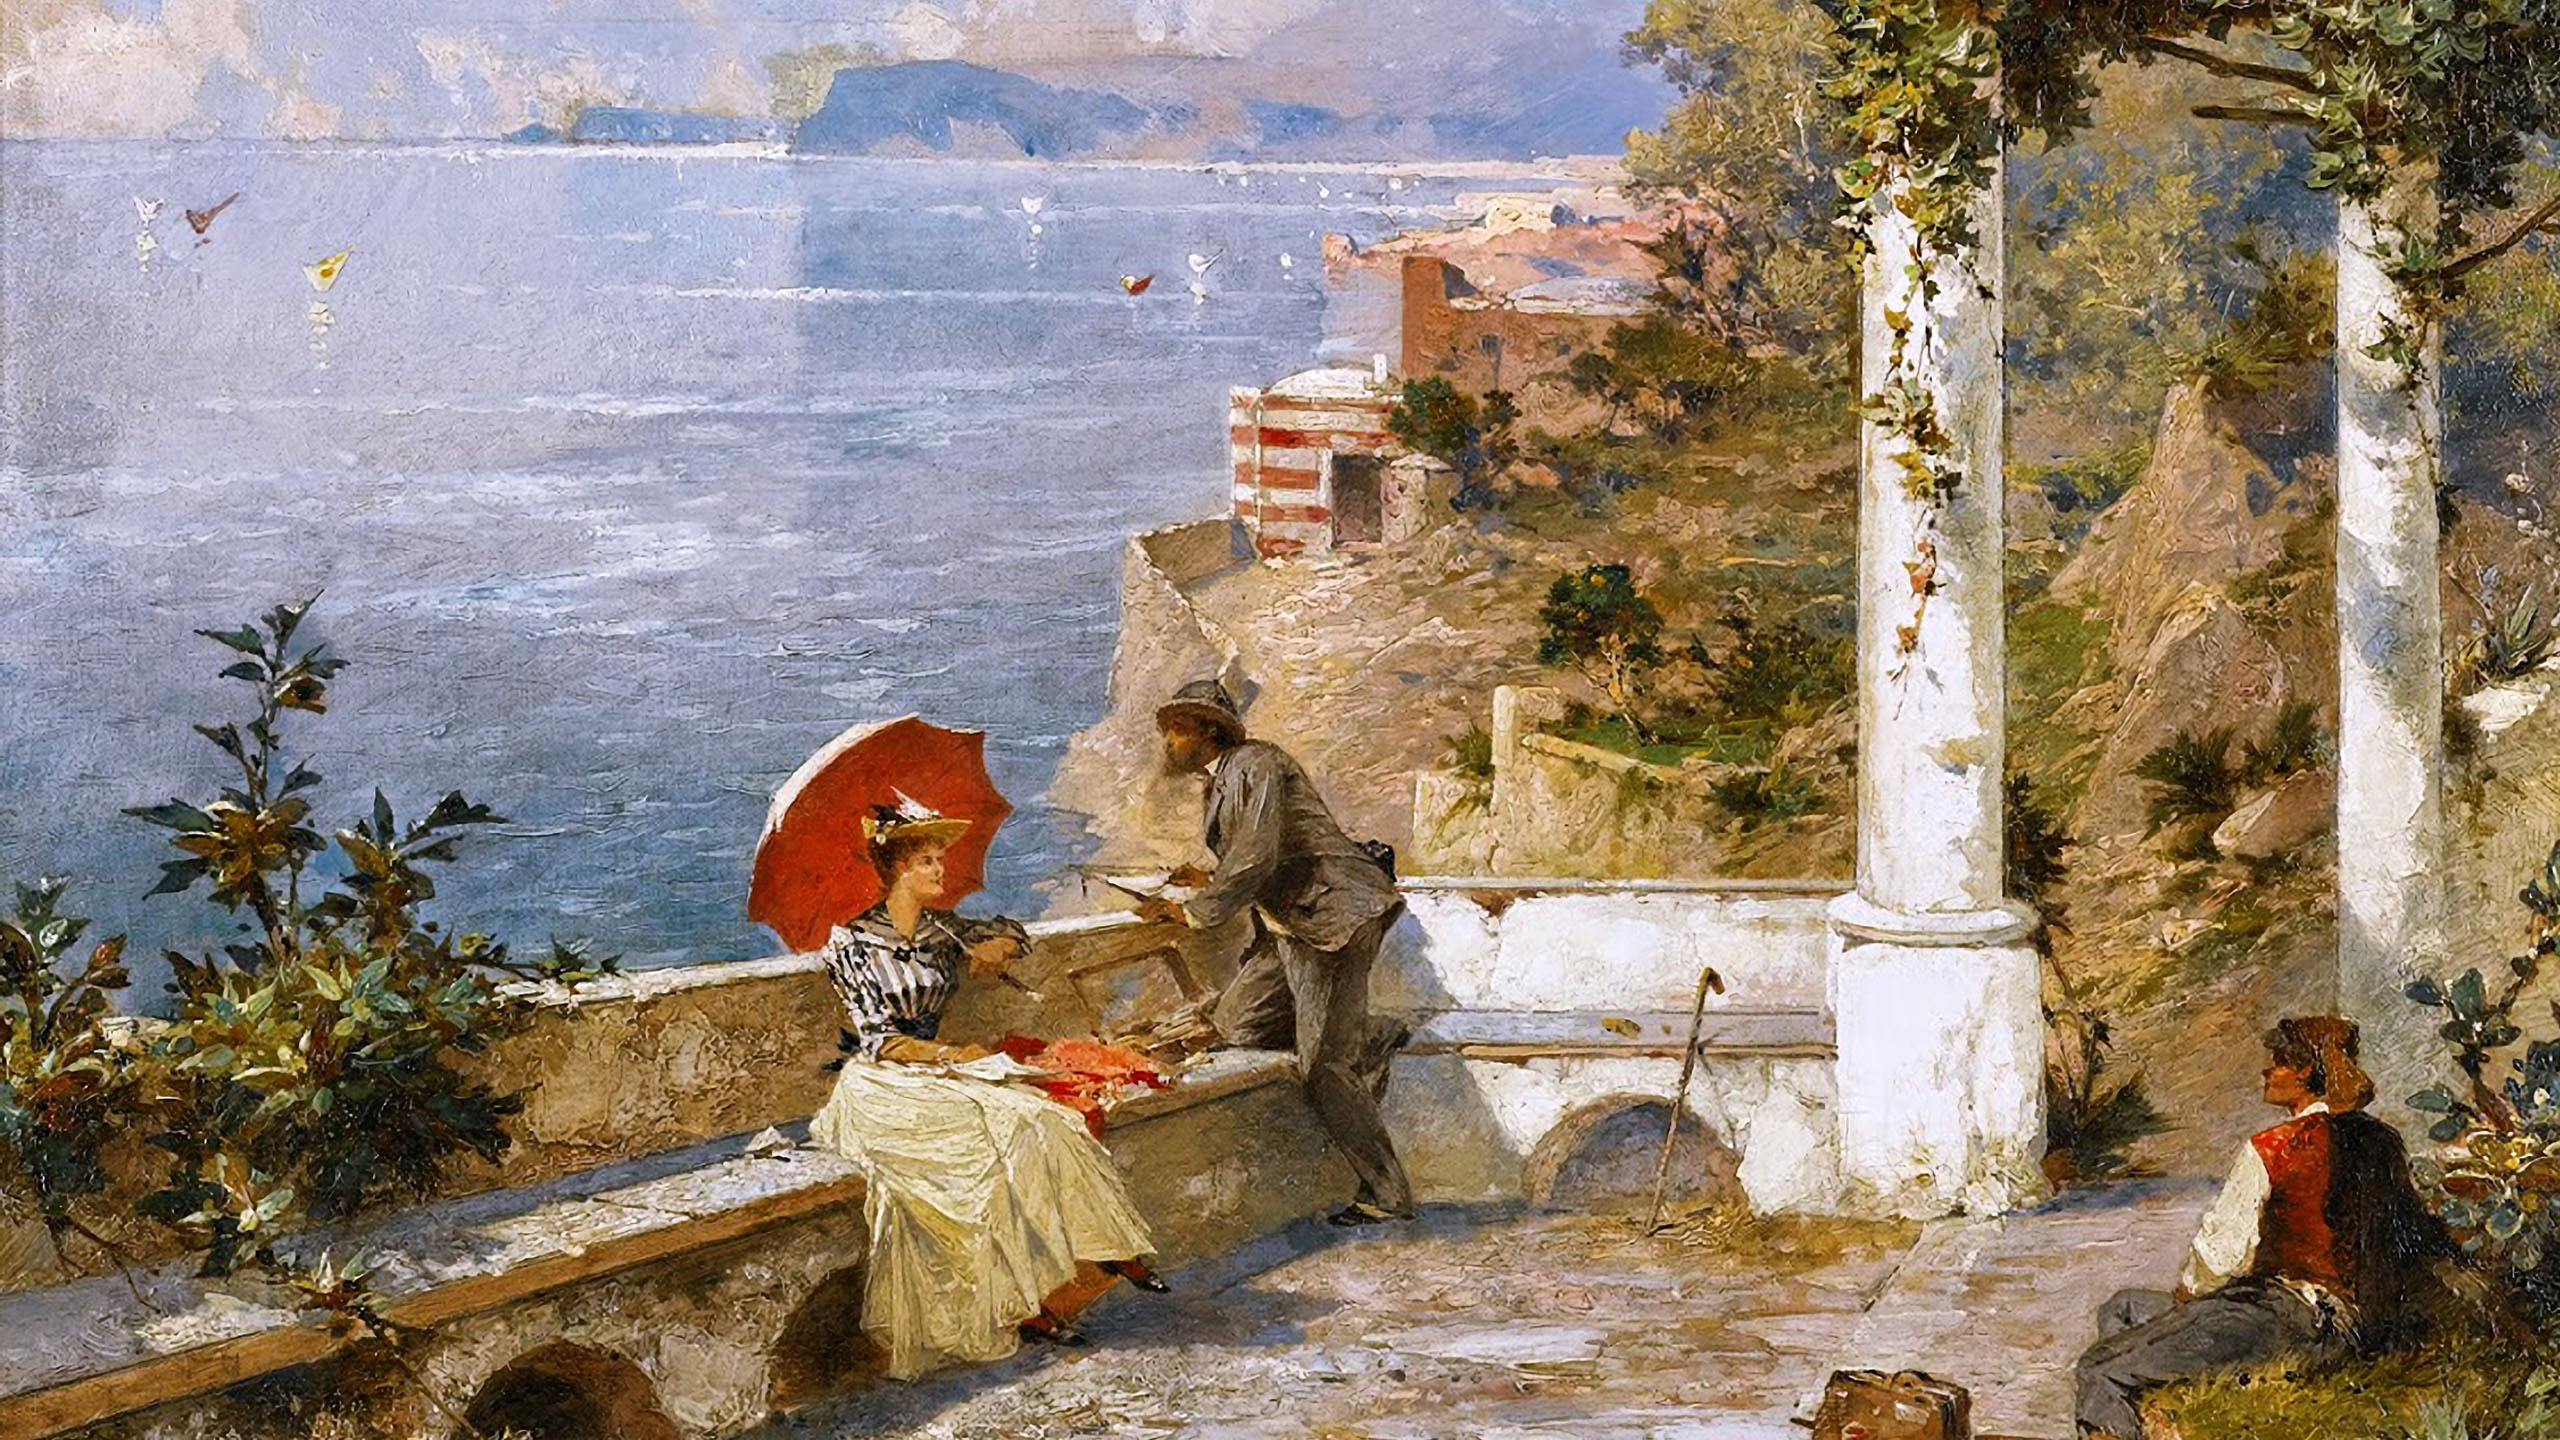 Franz Richard Unterberger - Amalfi Coast 2560x1440